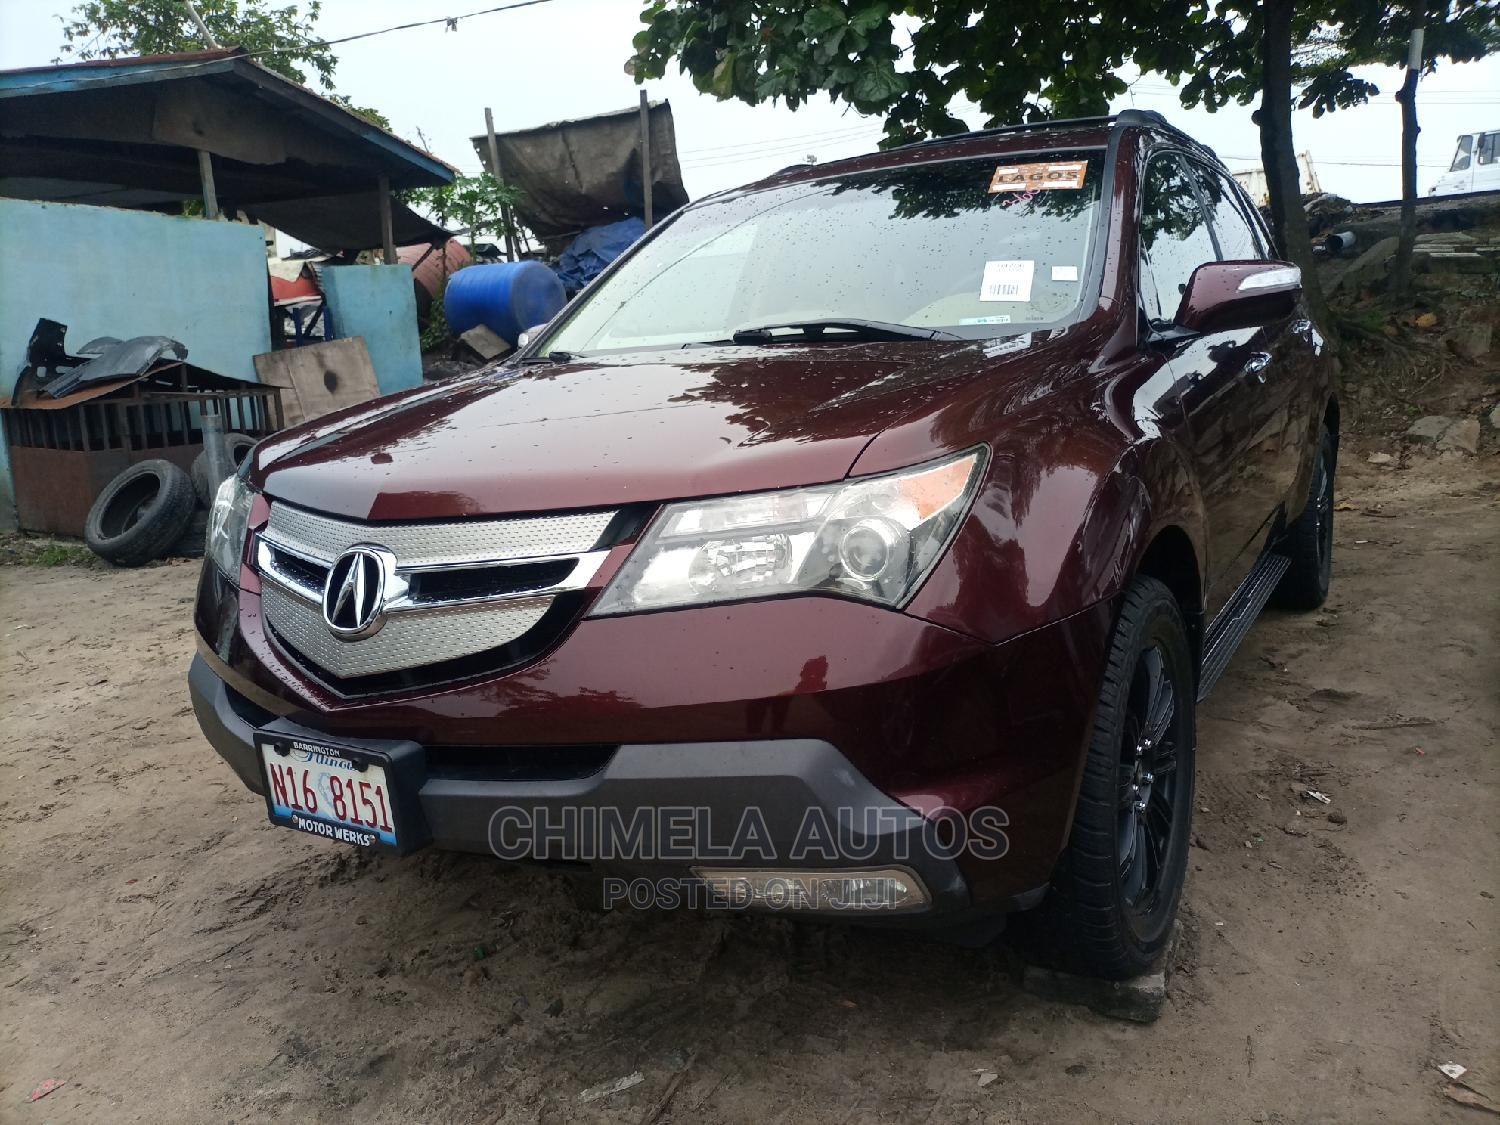 Acura MDX 2008 SUV 4dr AWD (3.7 6cyl 5A) Red